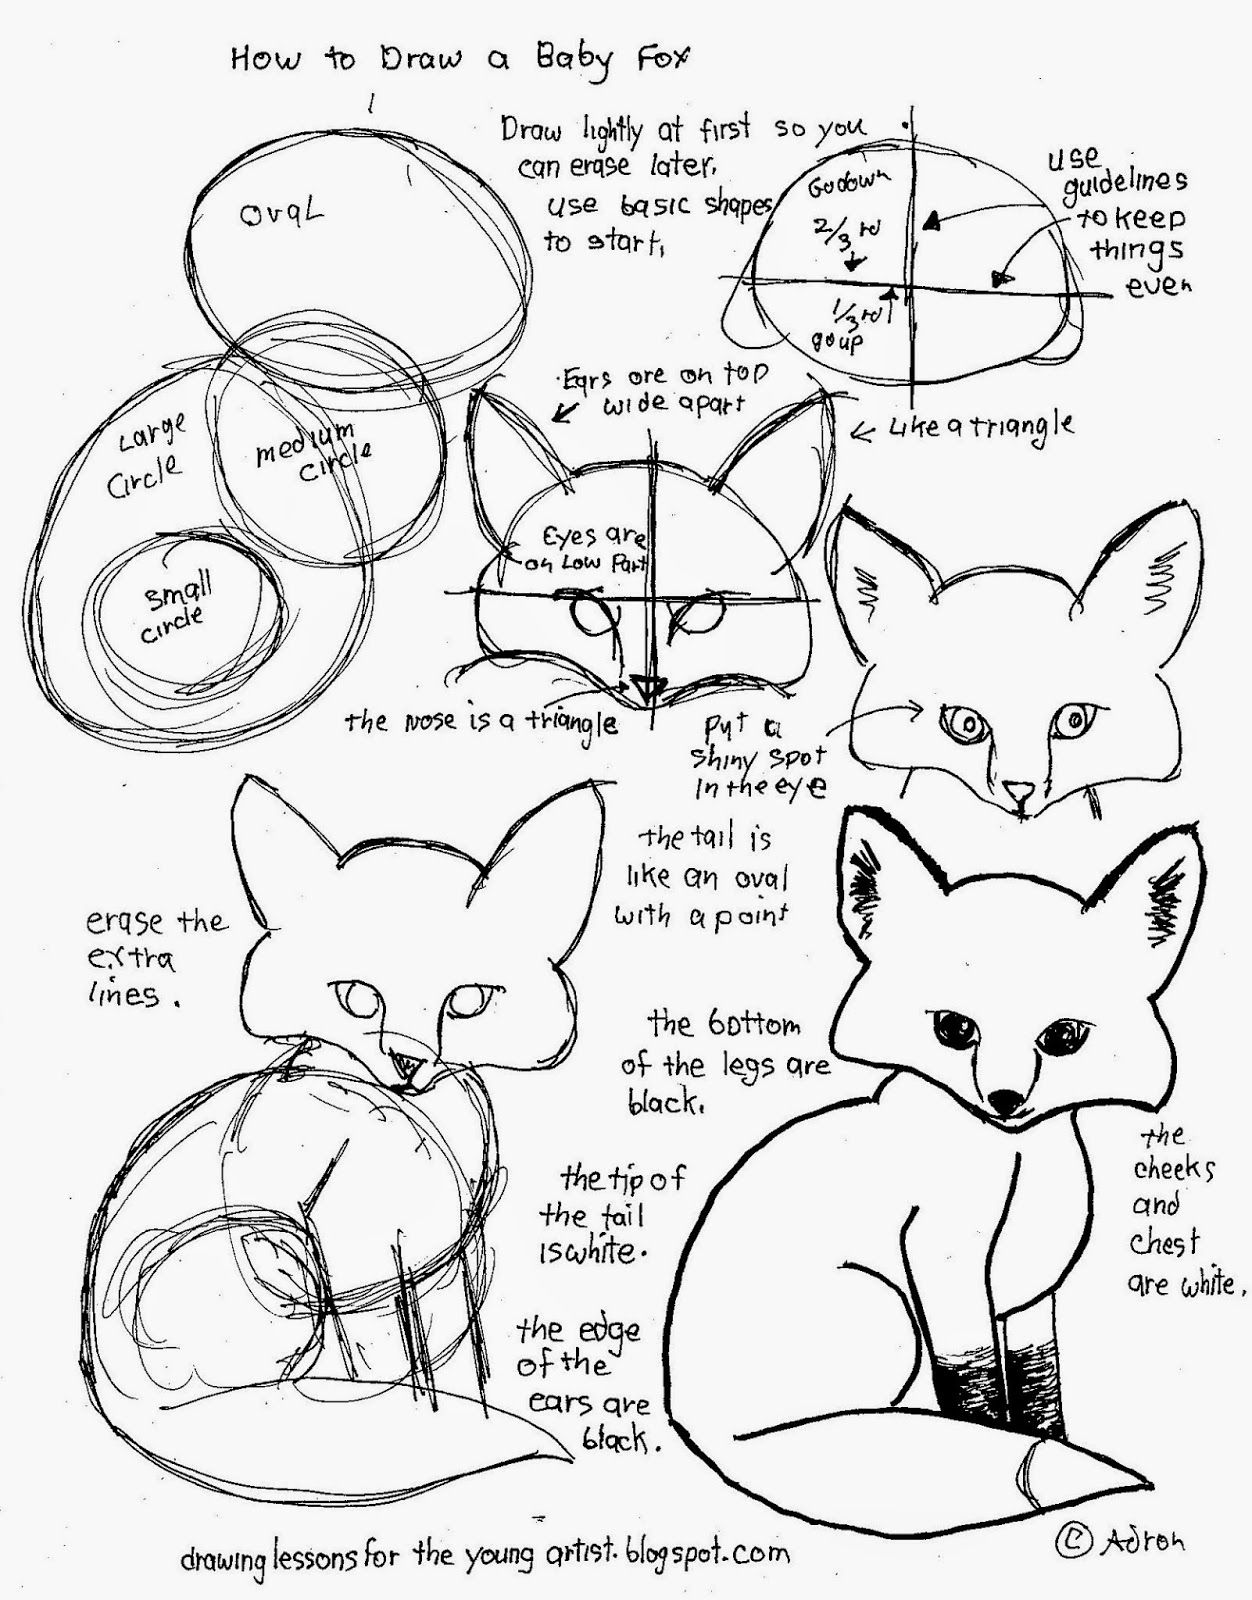 How To Draw Worksheets For The Young Artist How To Draw A Baby Fox Worksheet Free Printable Basic Drawing Animal Drawings Drawing Tutorial